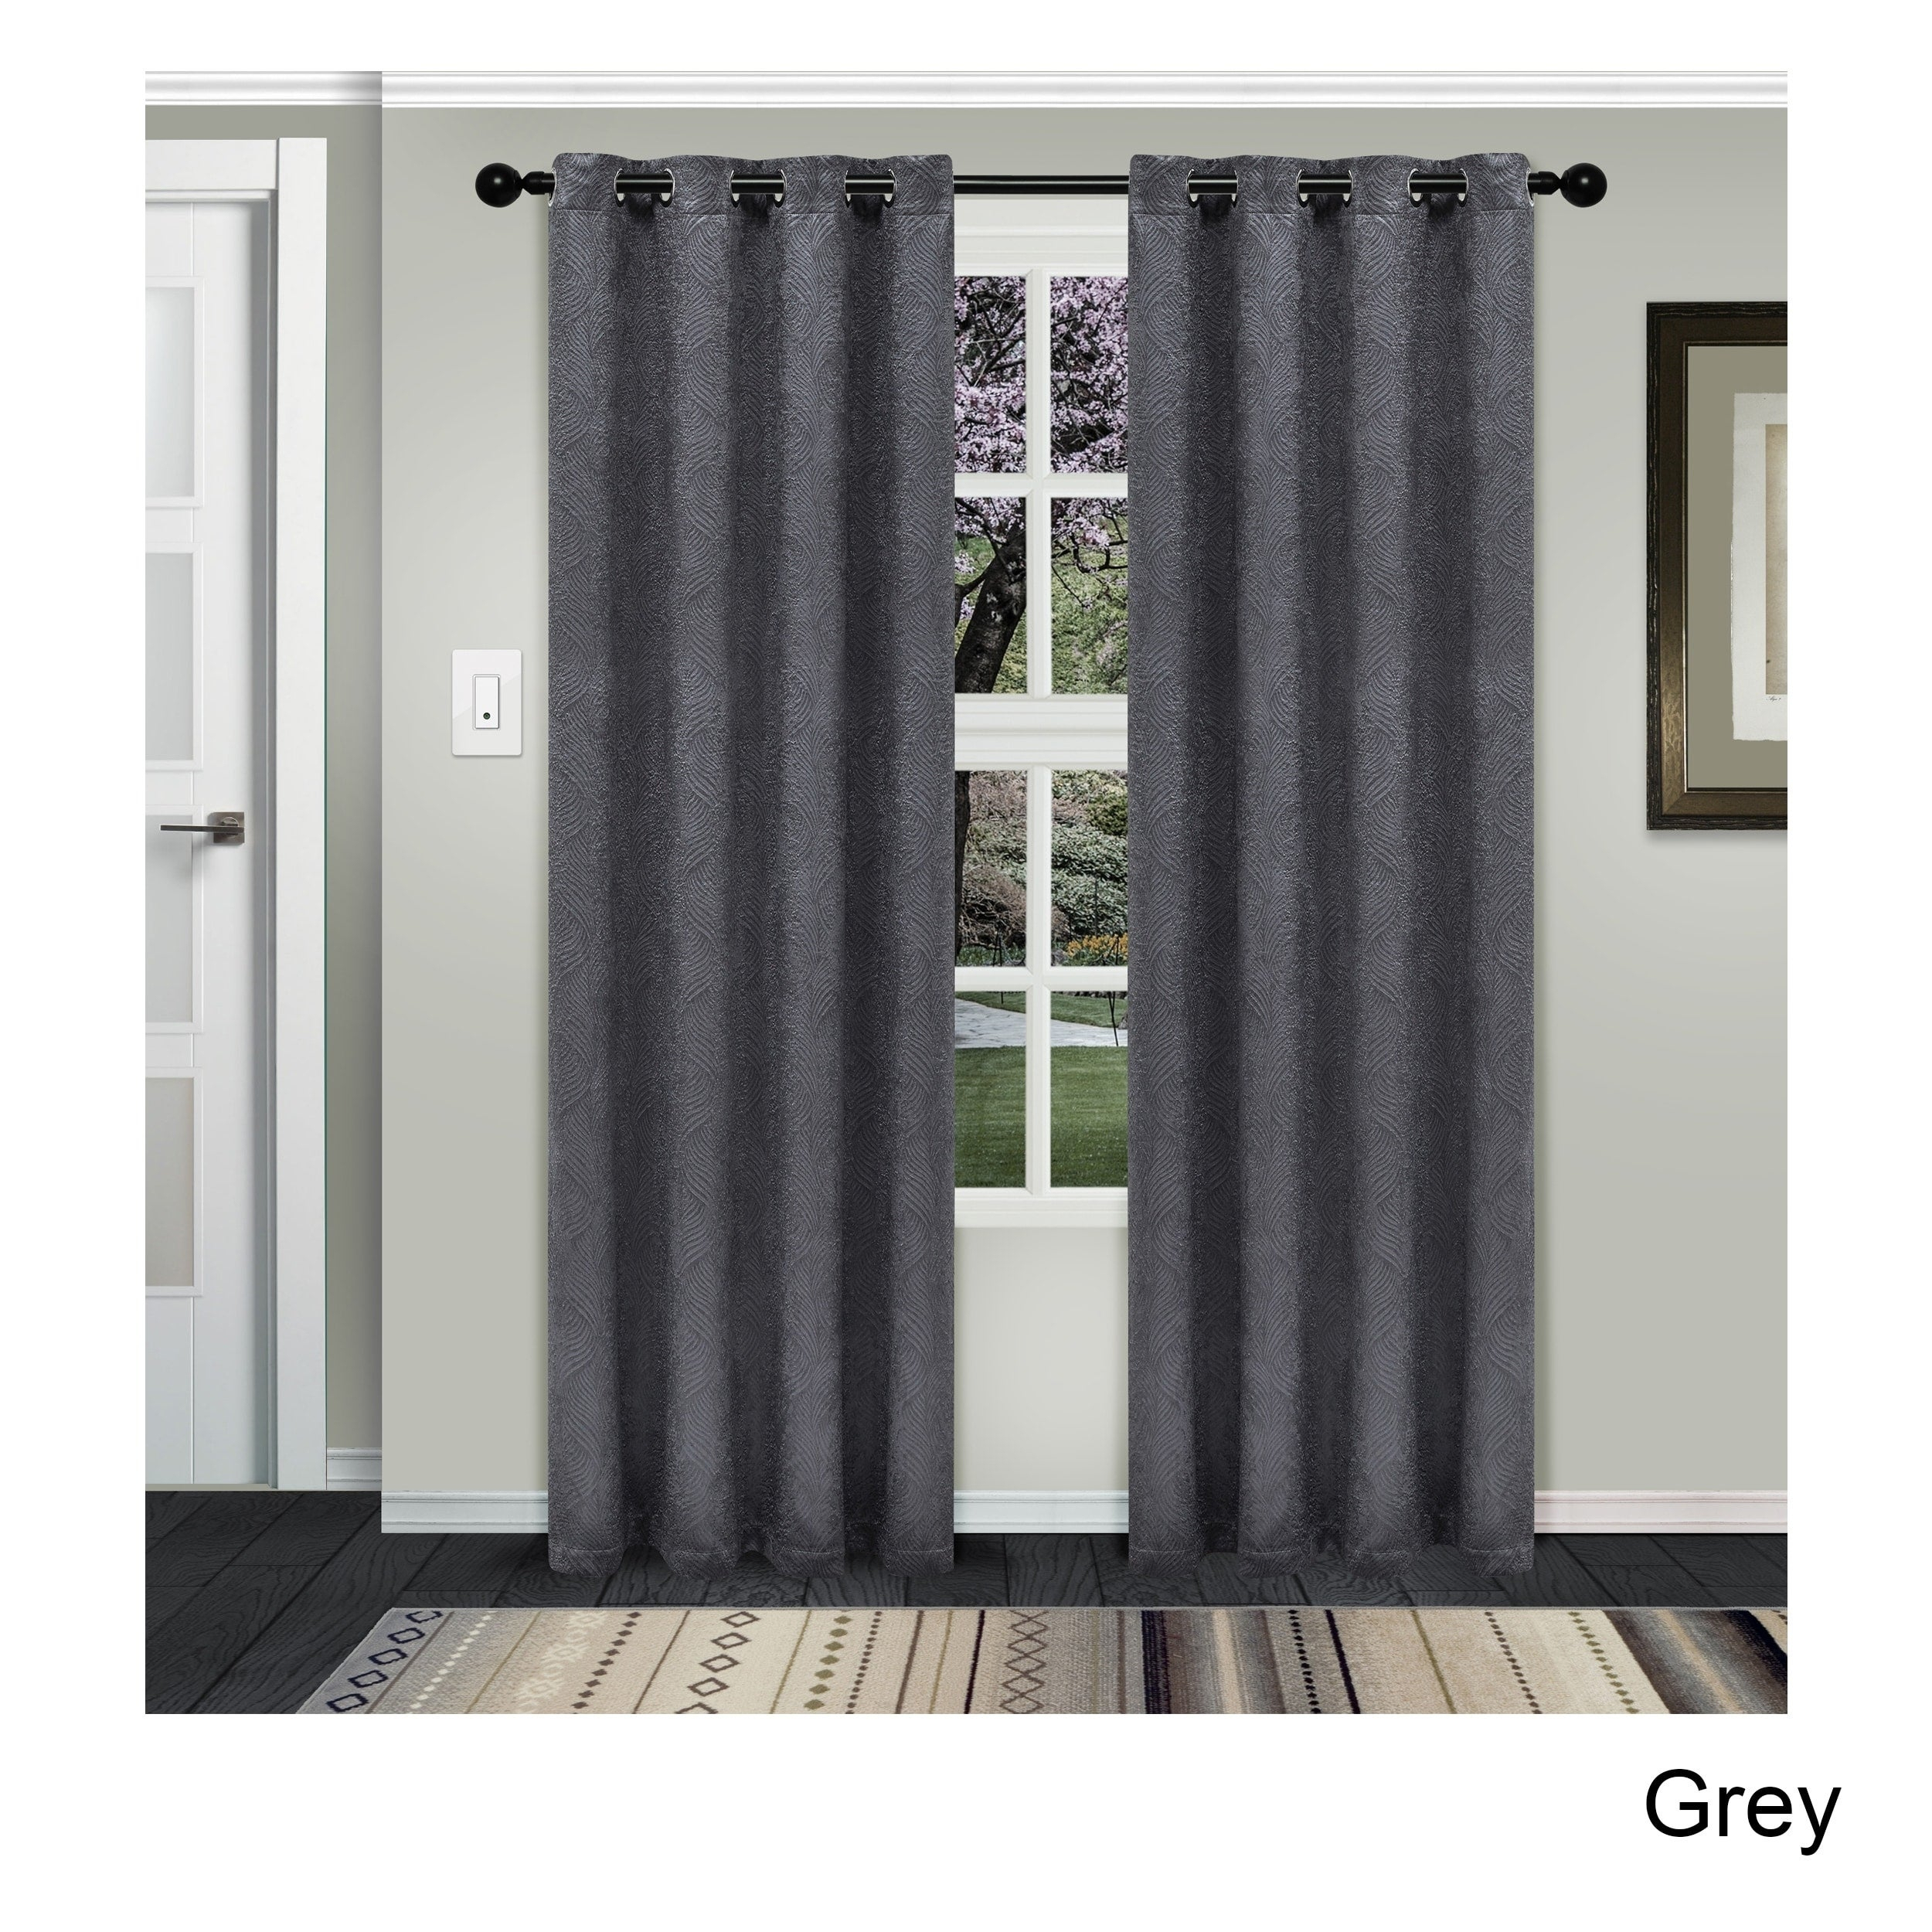 Superior Waverly Insulated Thermal Blackout Grommet Curtain Panel Pair In Twig Insulated Blackout Curtain Panel Pairs With Grommet Top (View 17 of 30)